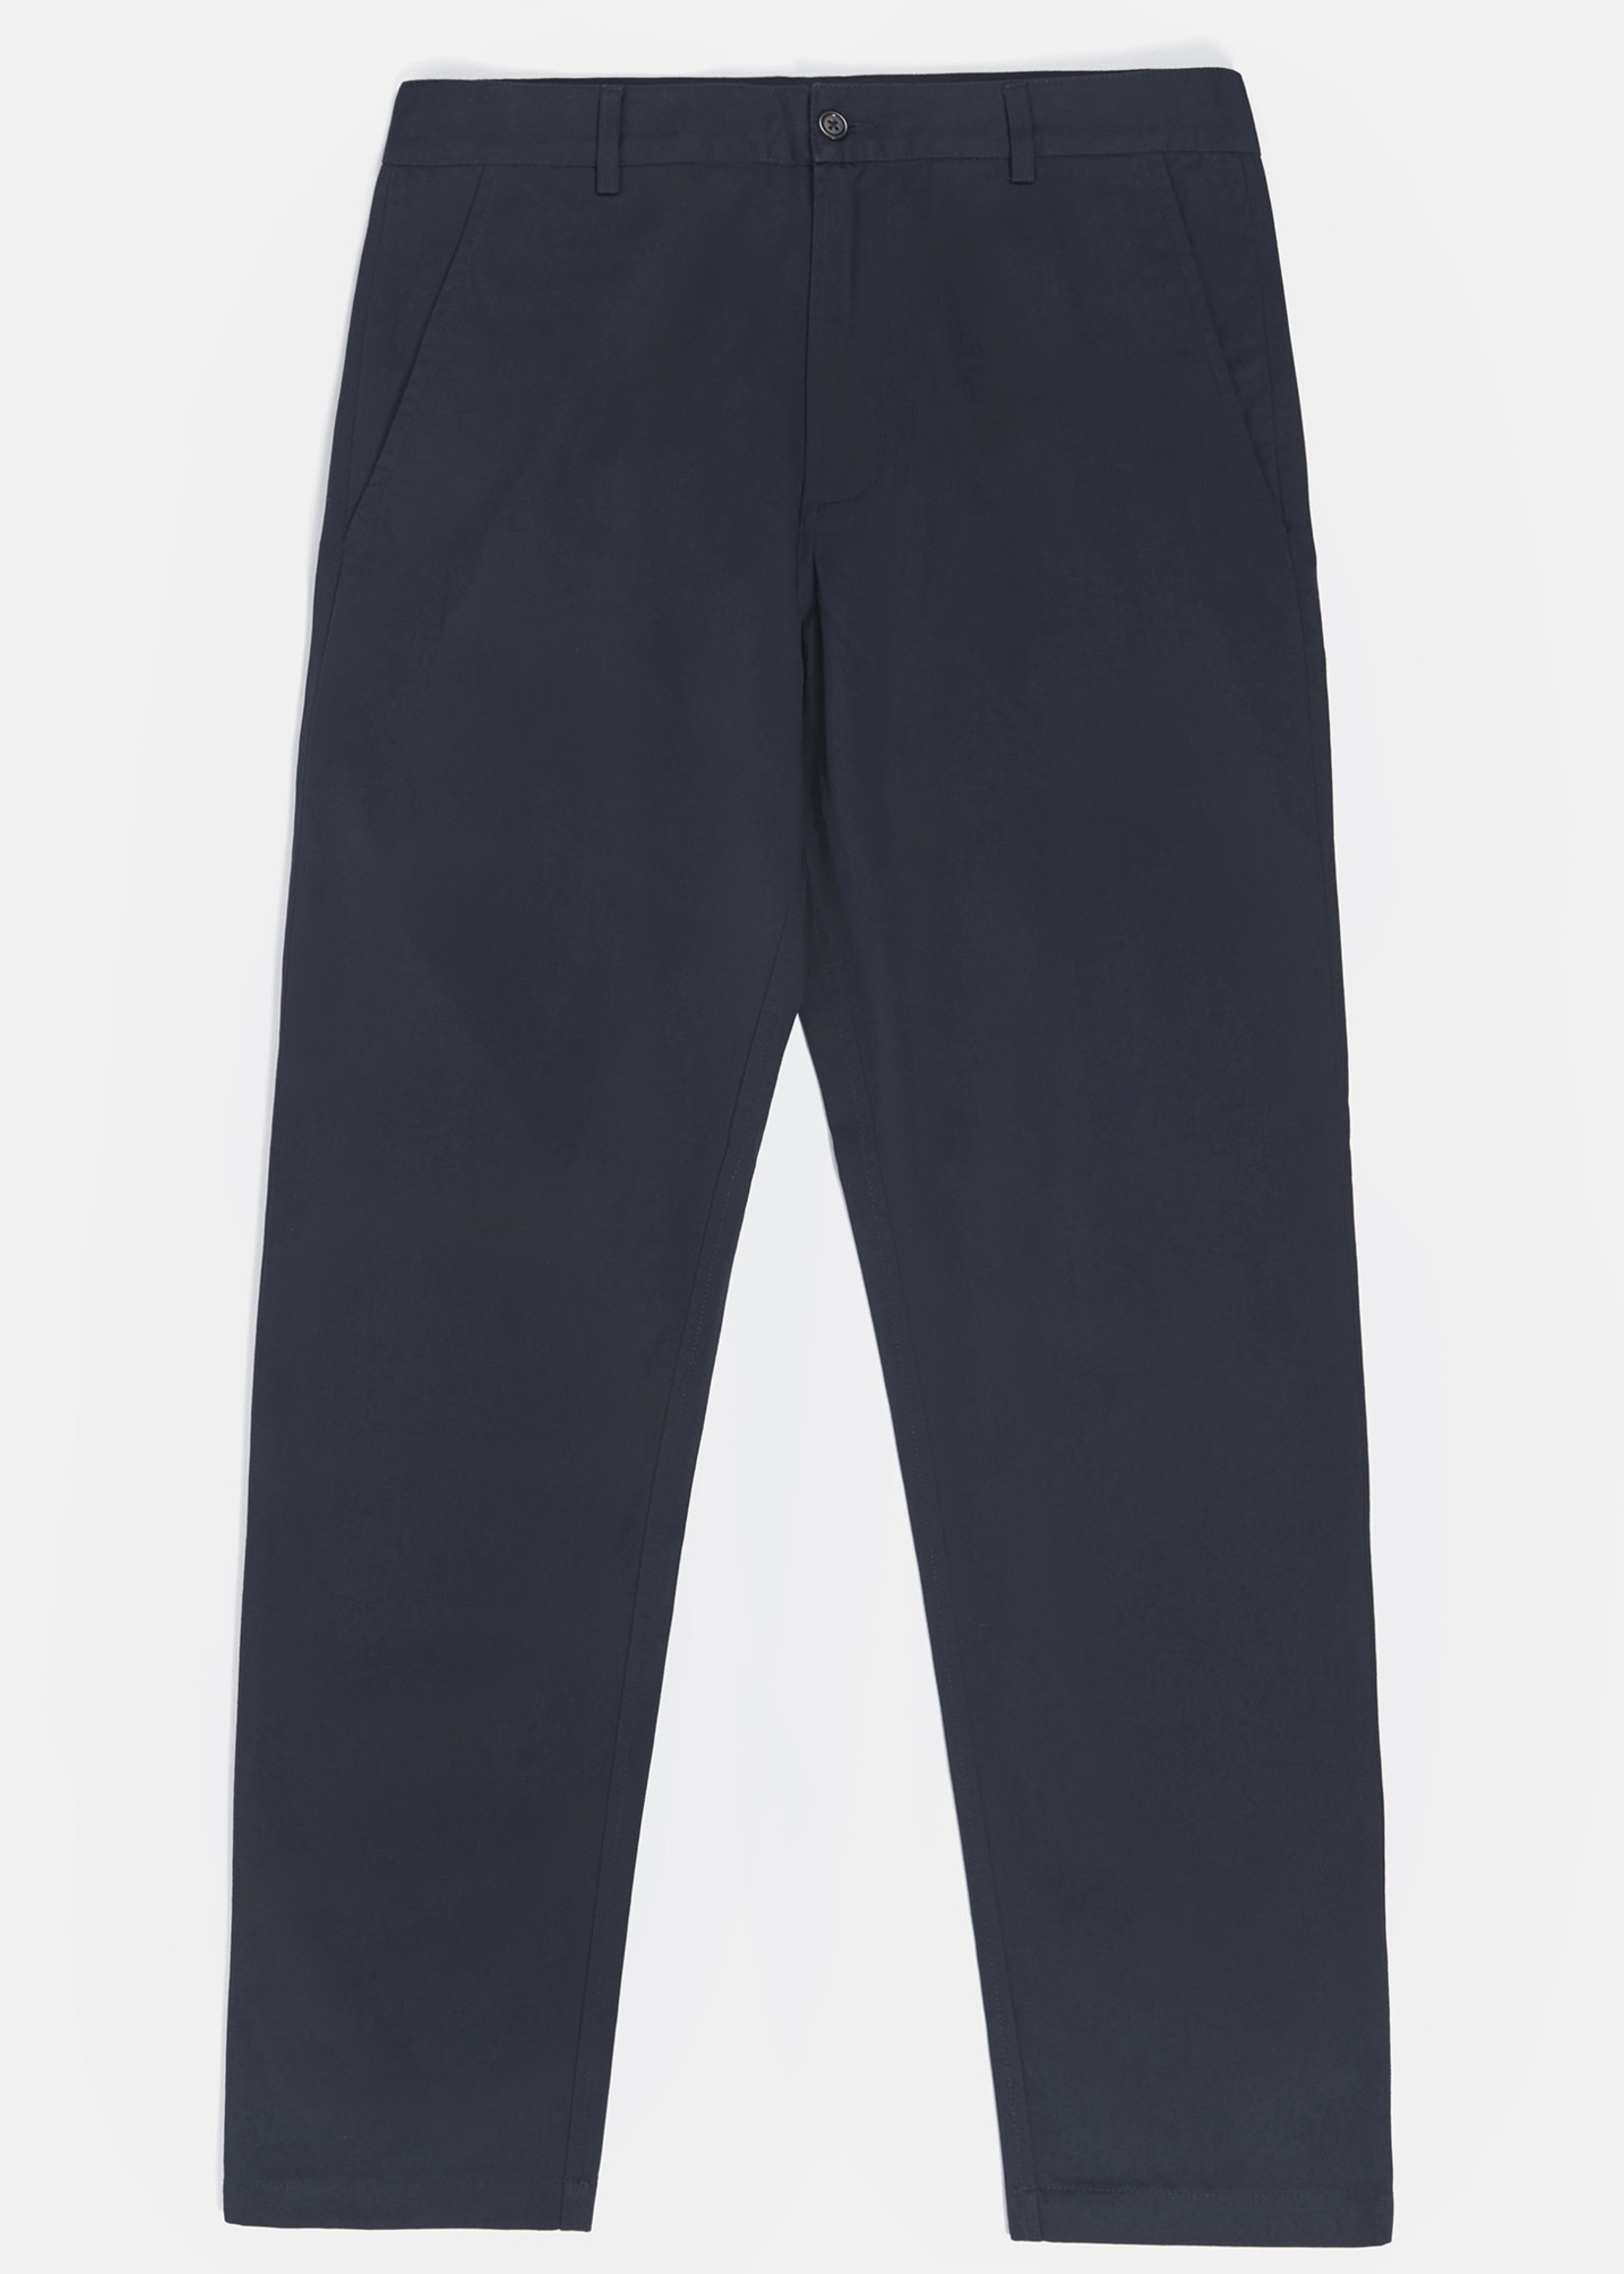 Universal Works Universal Works Aston Pant in Navy Twill Cotton